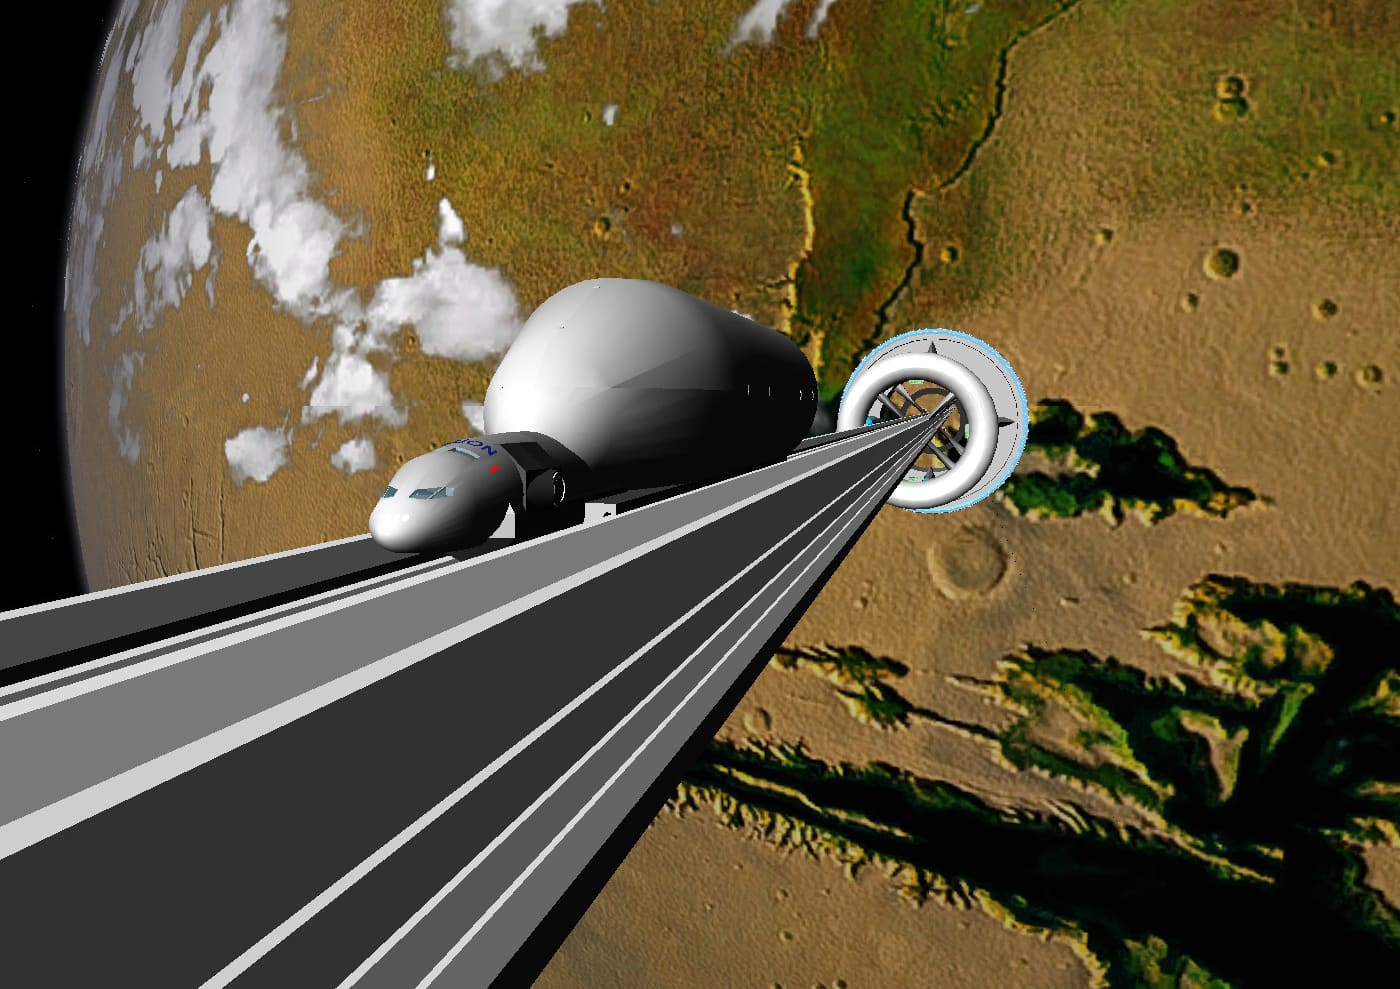 Japanese firm to build space elevator by 2050